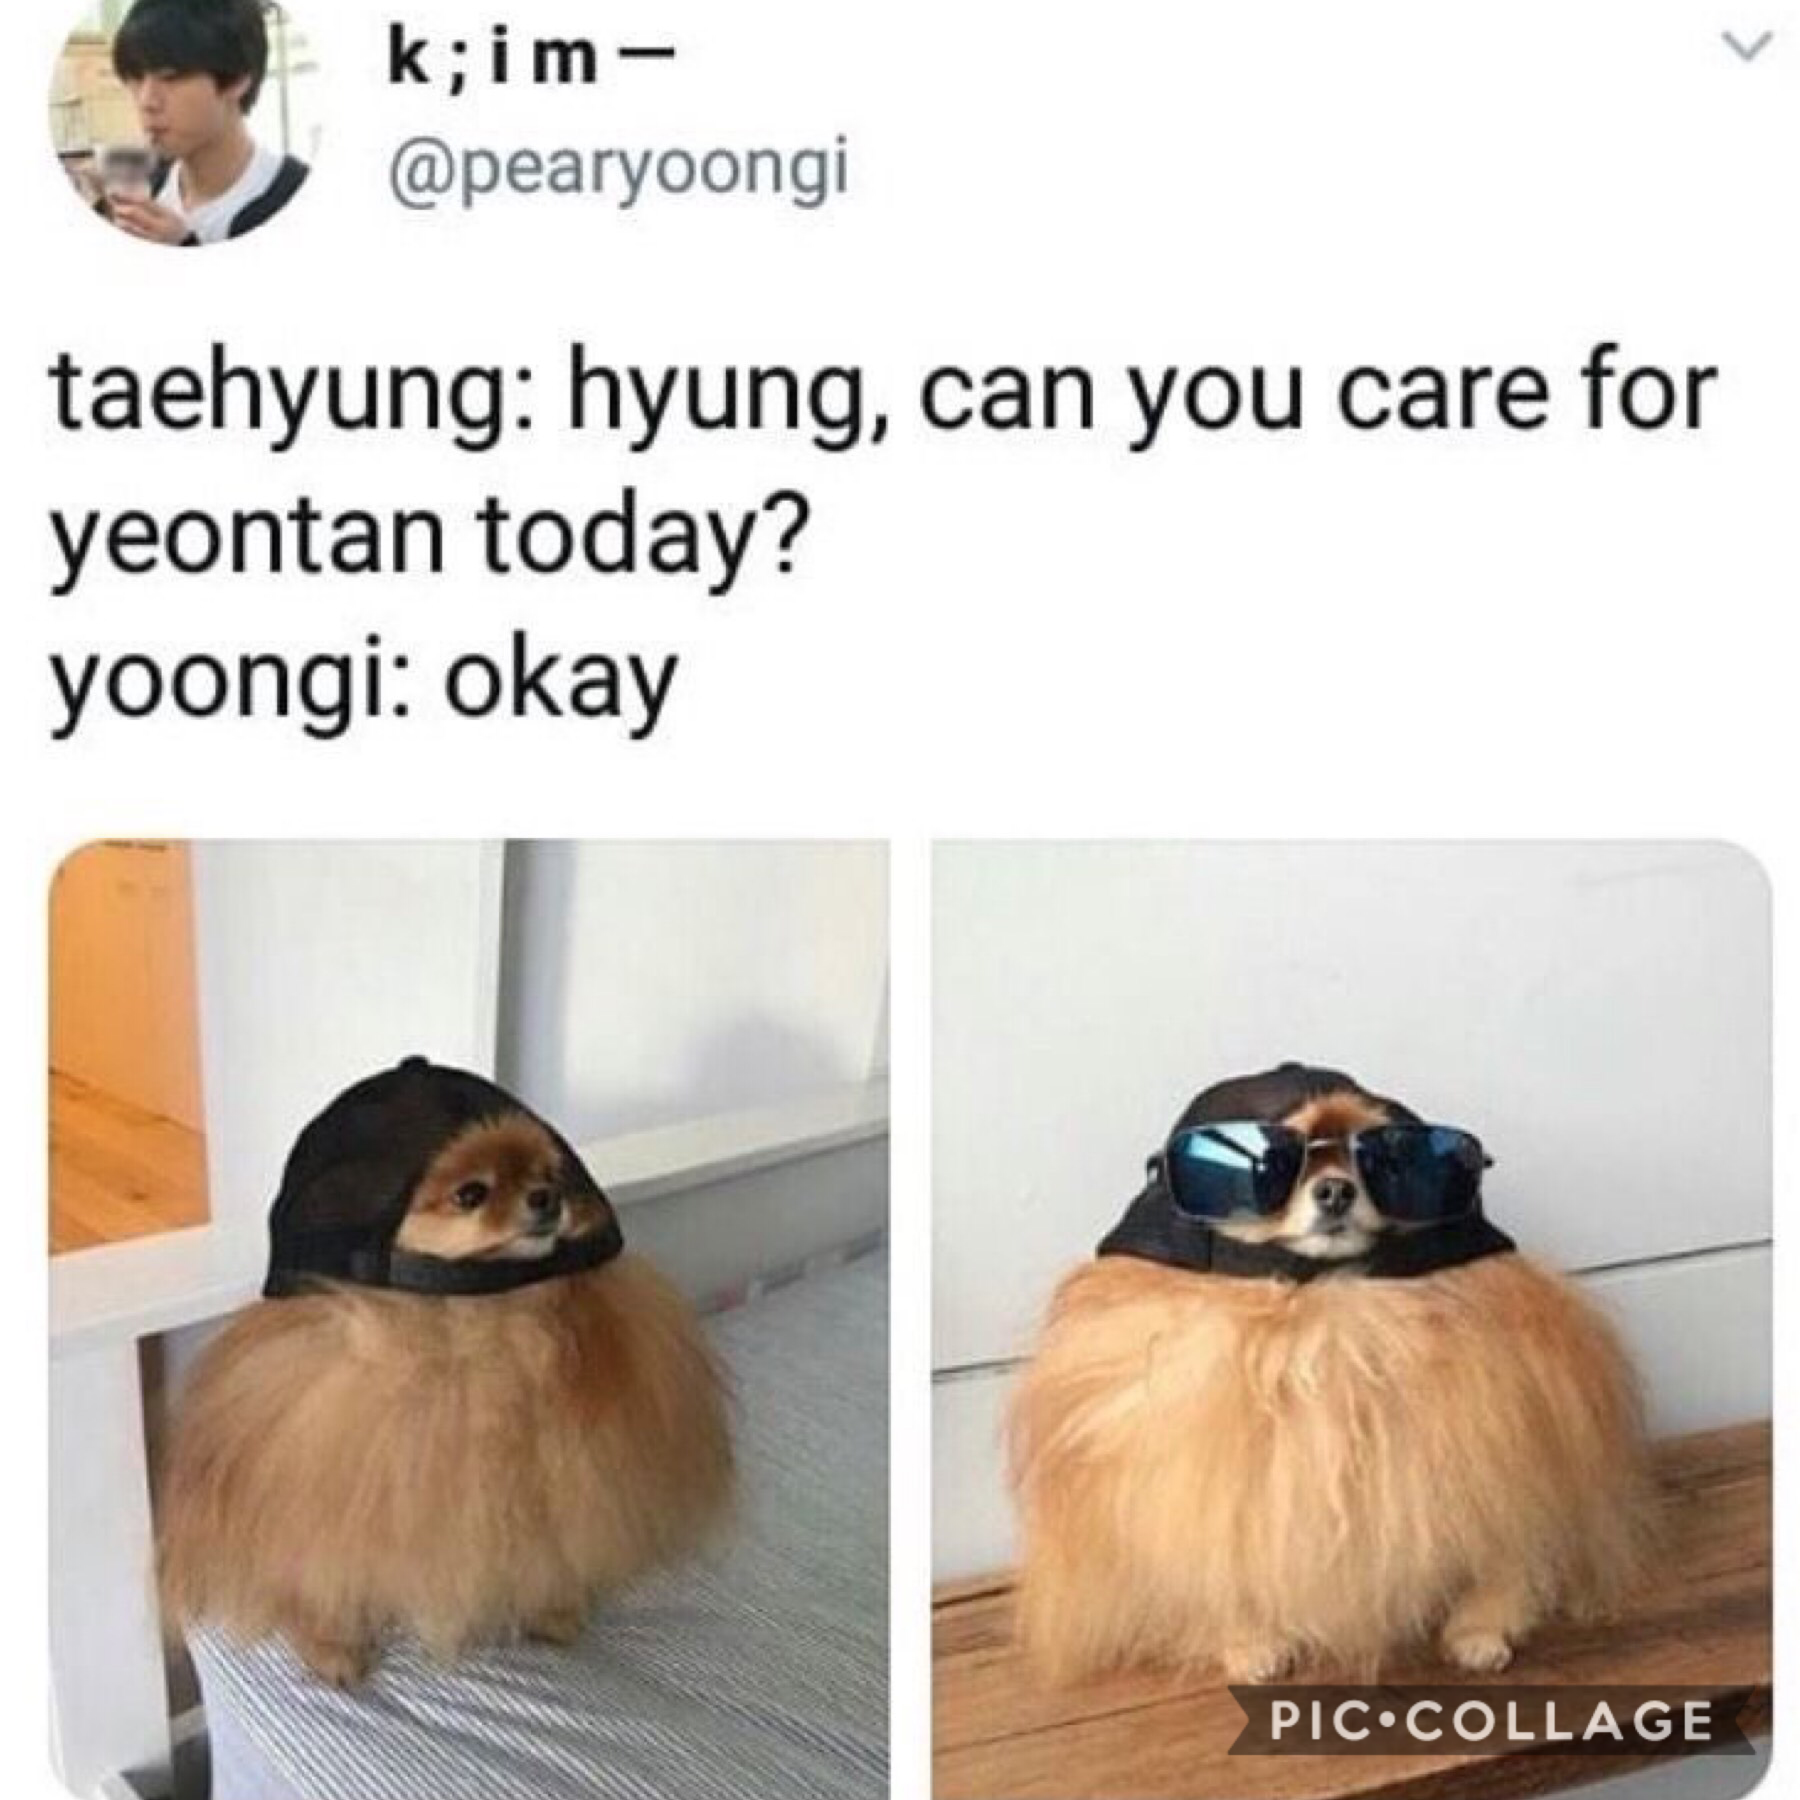 yEoNTaN iS So sWaGgy